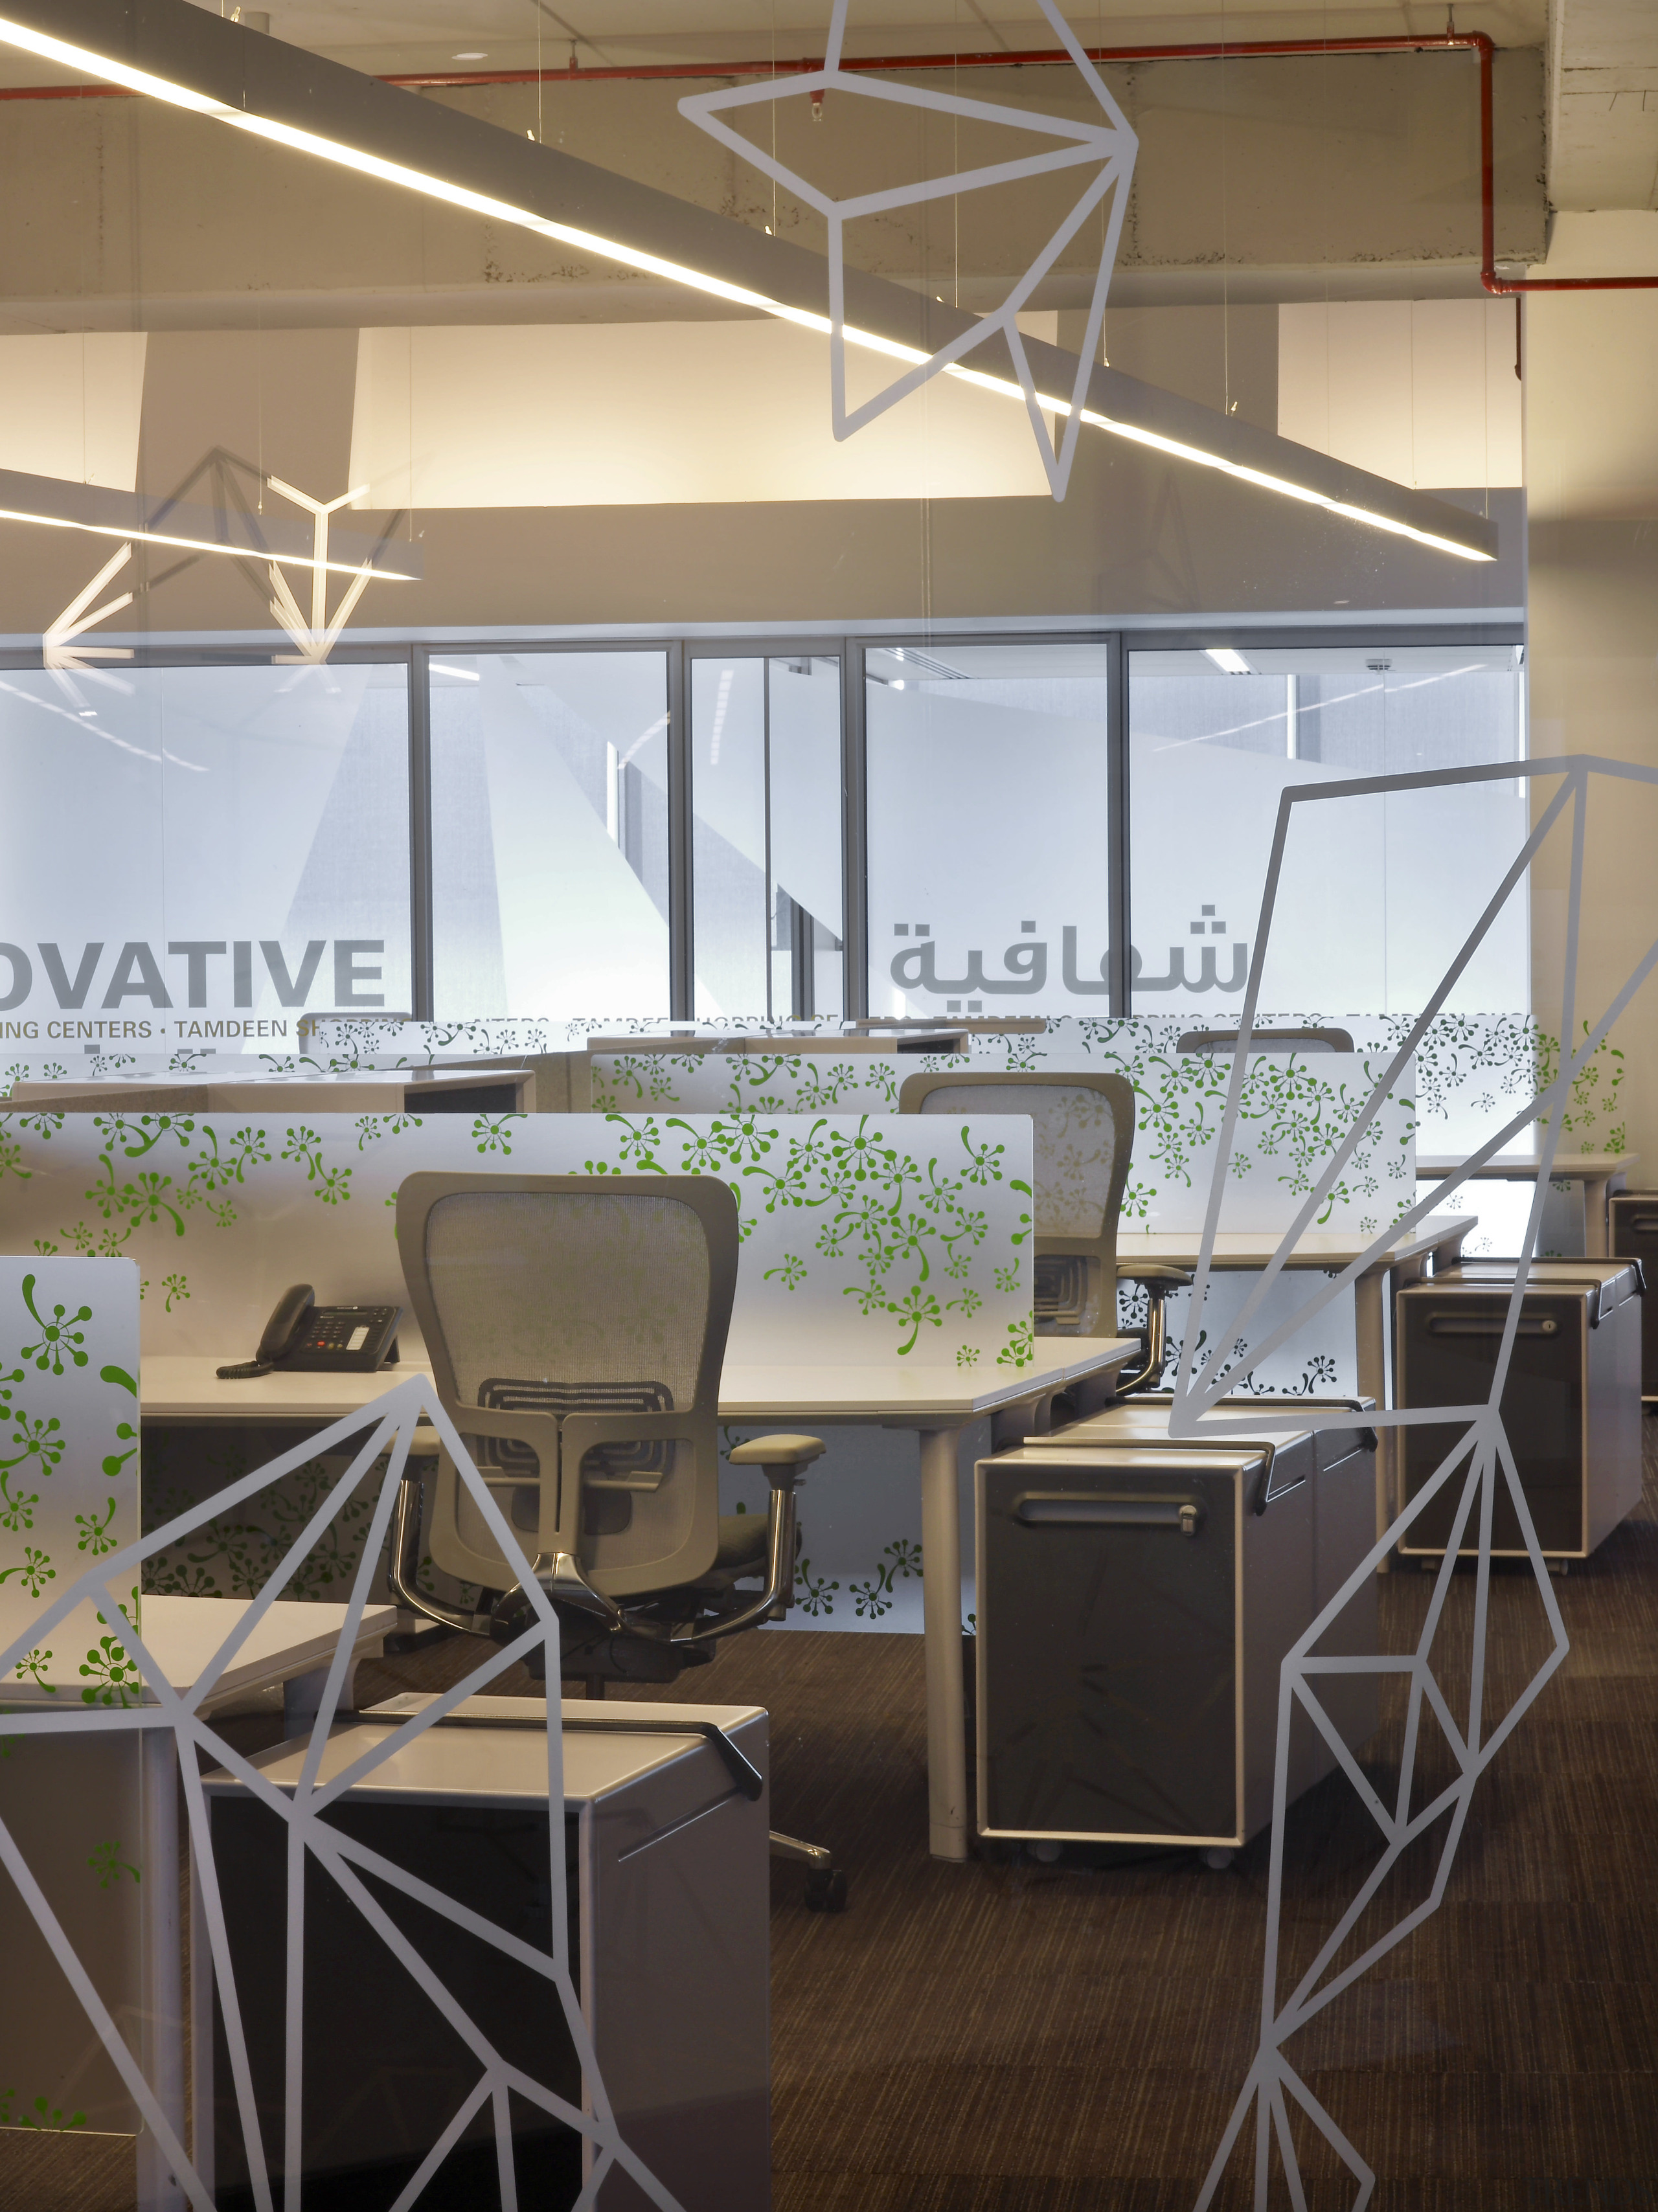 Interior with desks and grey geometrical designs. - daylighting, furniture, glass, interior design, office, product design, black, gray